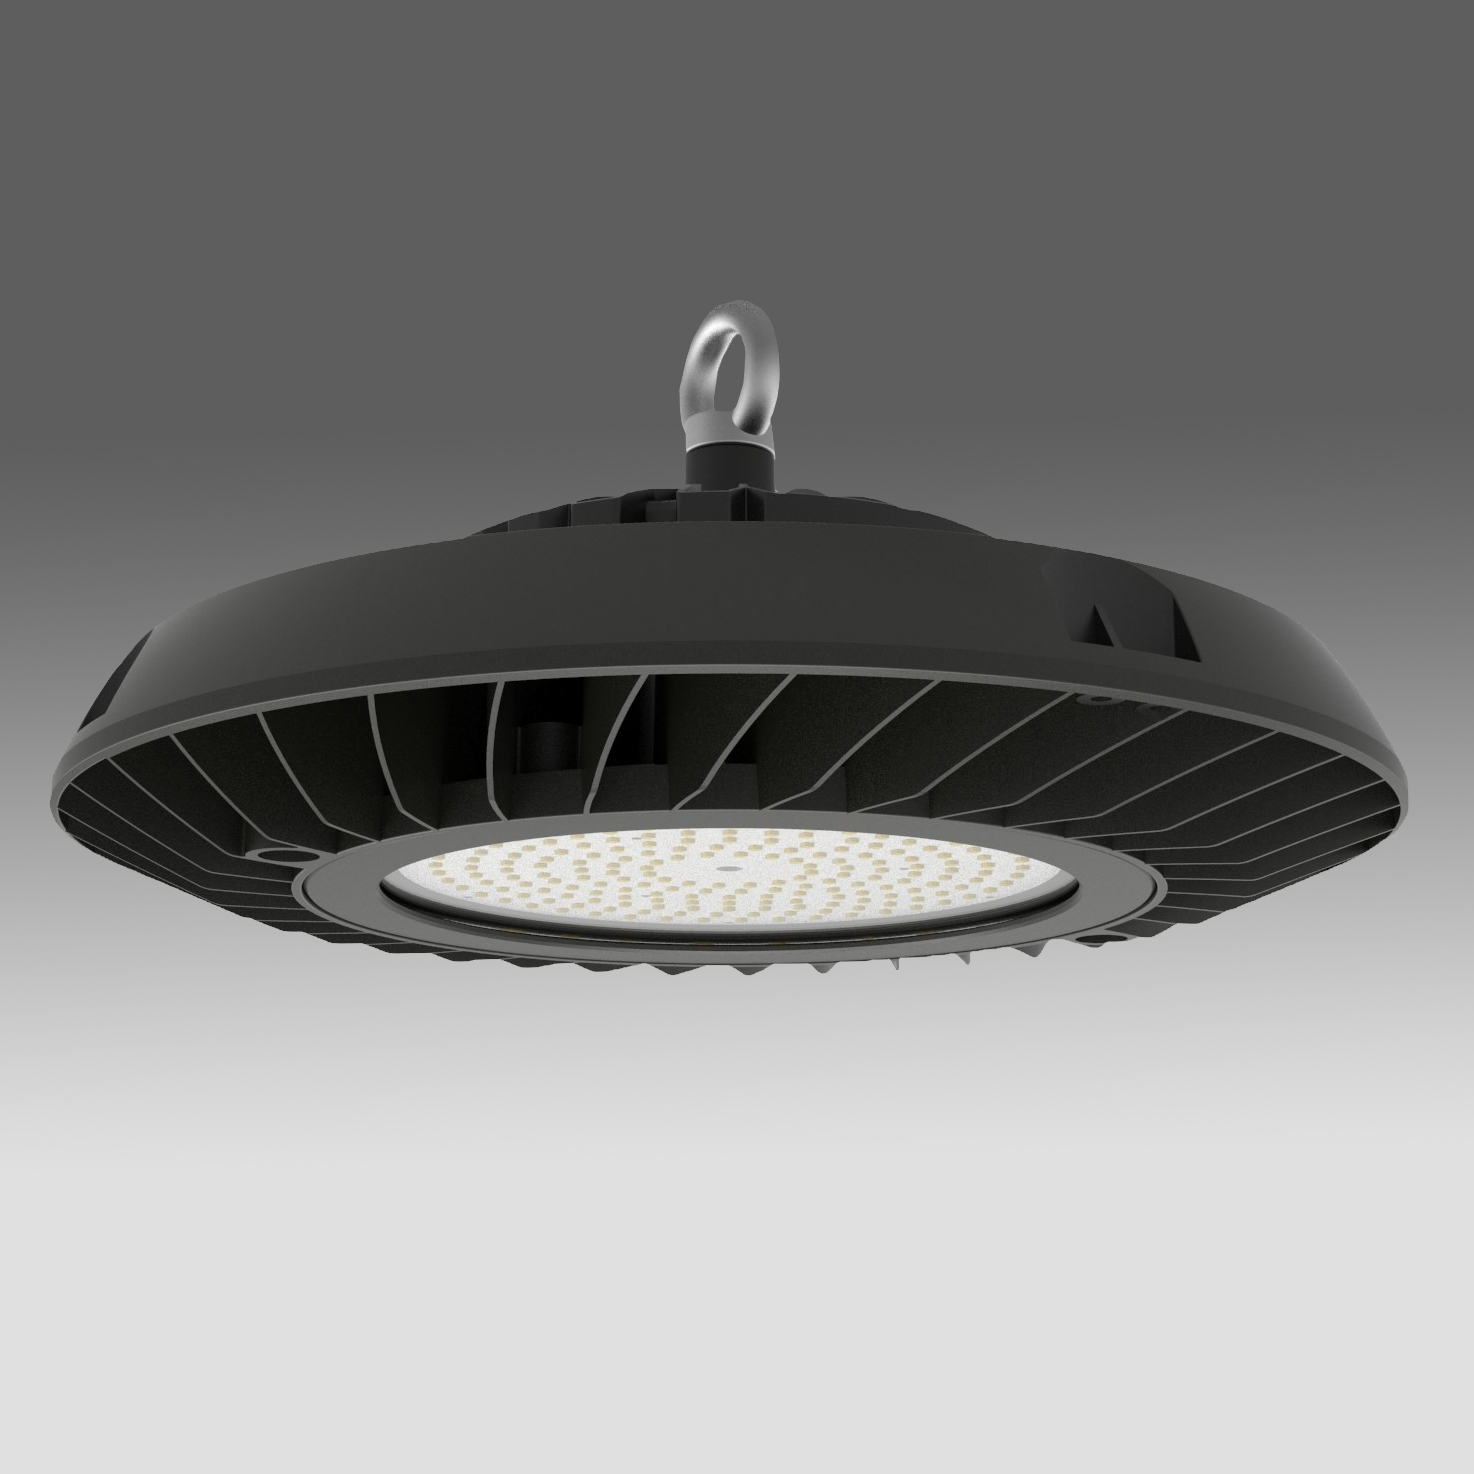 1 Stk Arktur Eco LED 90W 840 12600lm IP65 120° LITP0001--